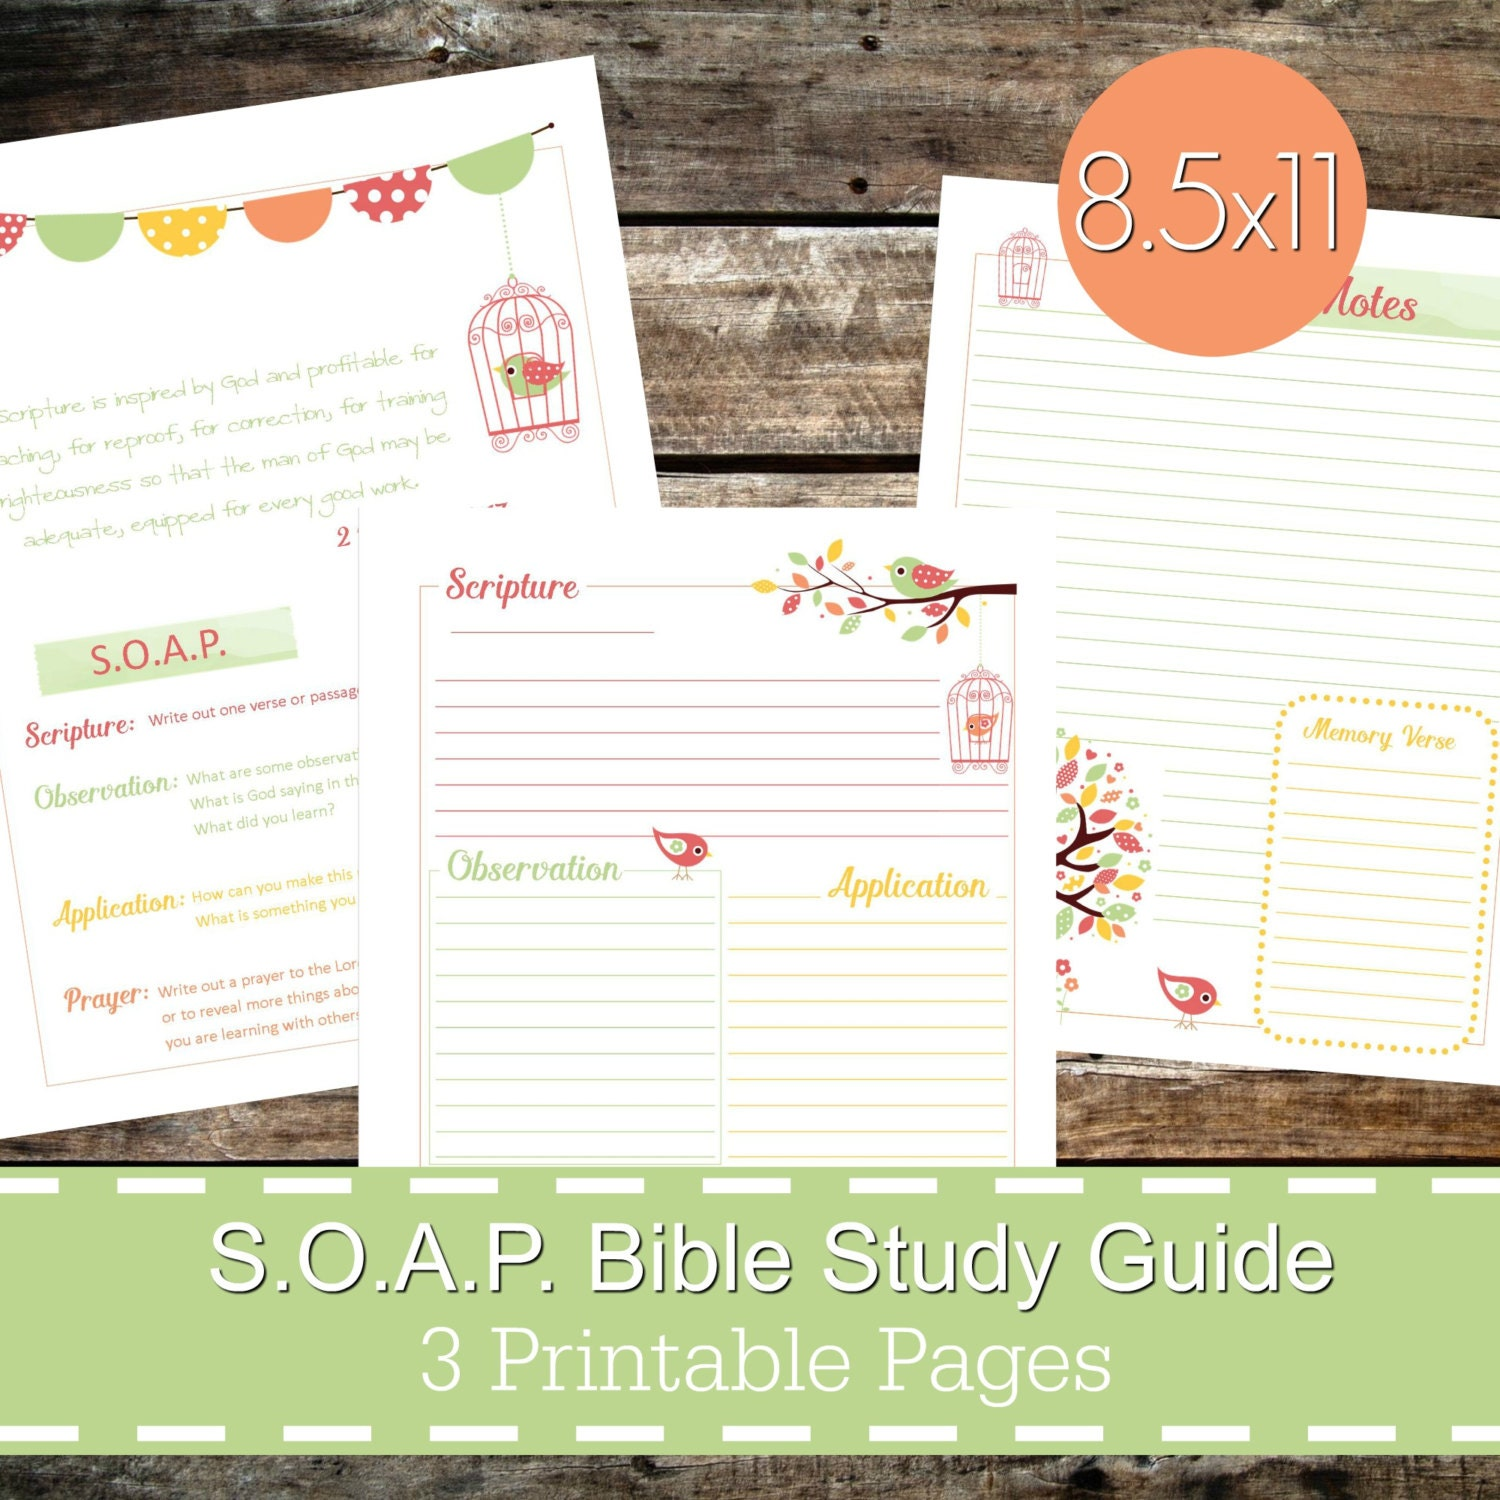 s.o.a.p. bible study guide printables pdf soap christian | etsy